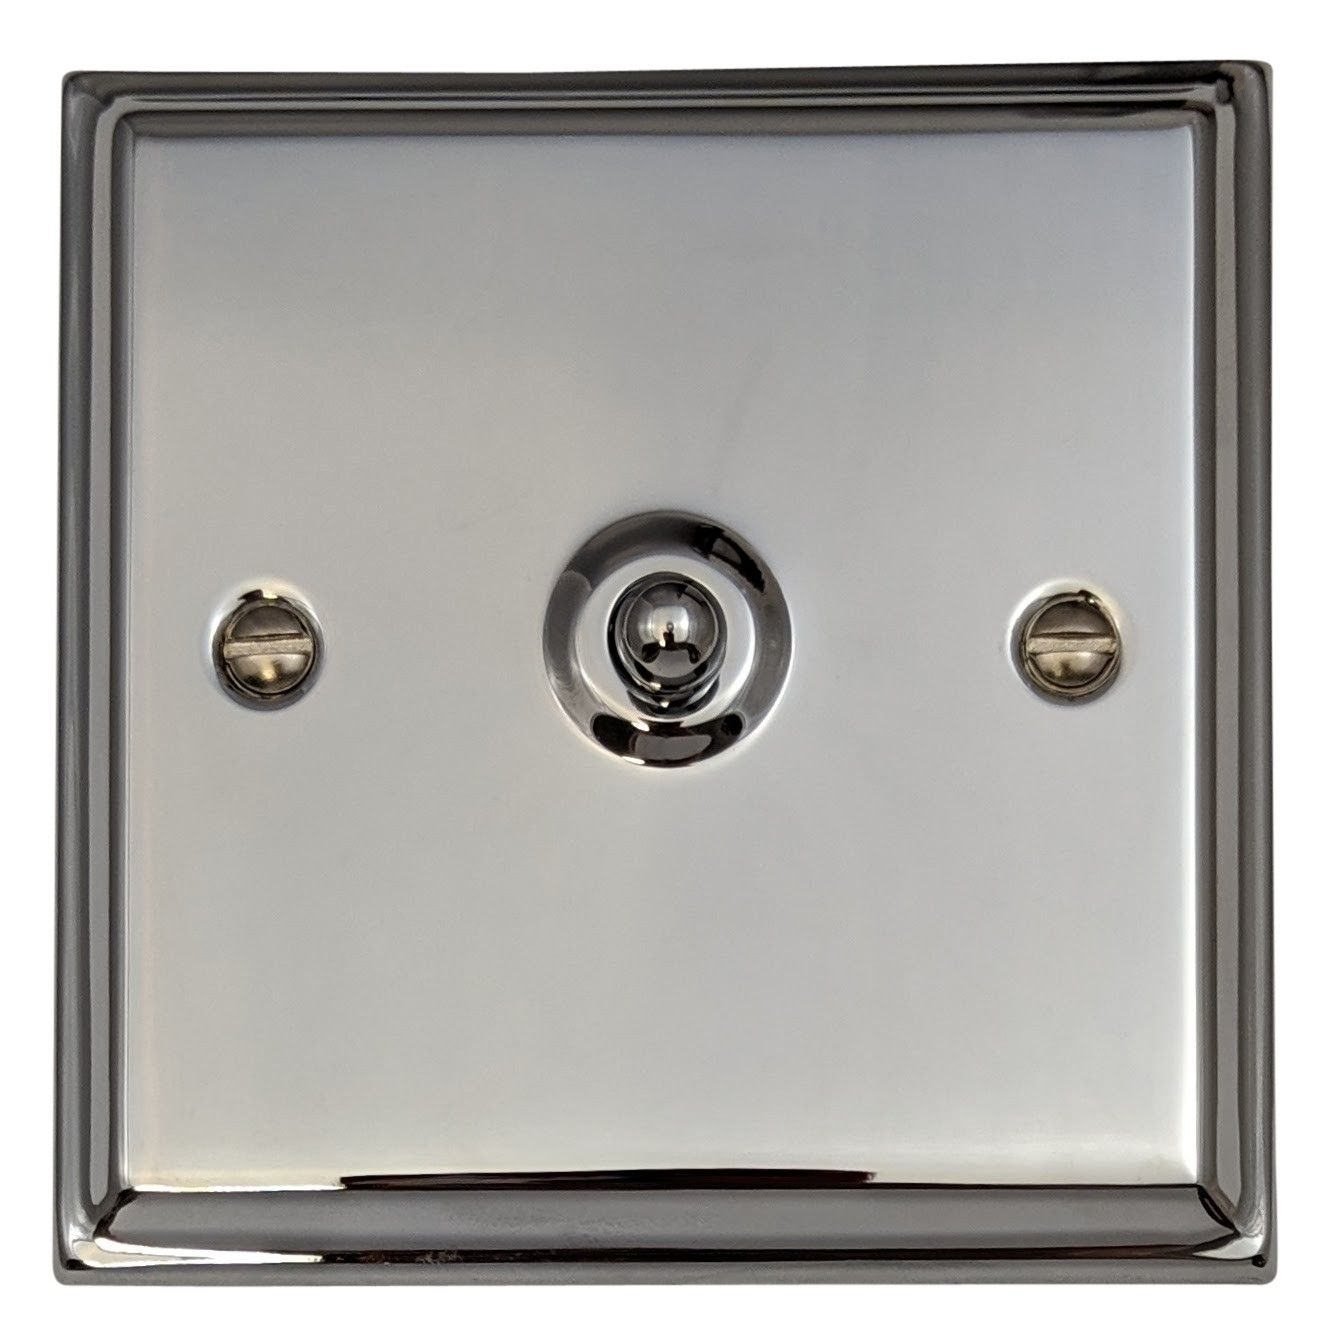 G&H DC281 Deco Plate Polished Chrome 1 Gang 1 or 2 Way Toggle Light Switch